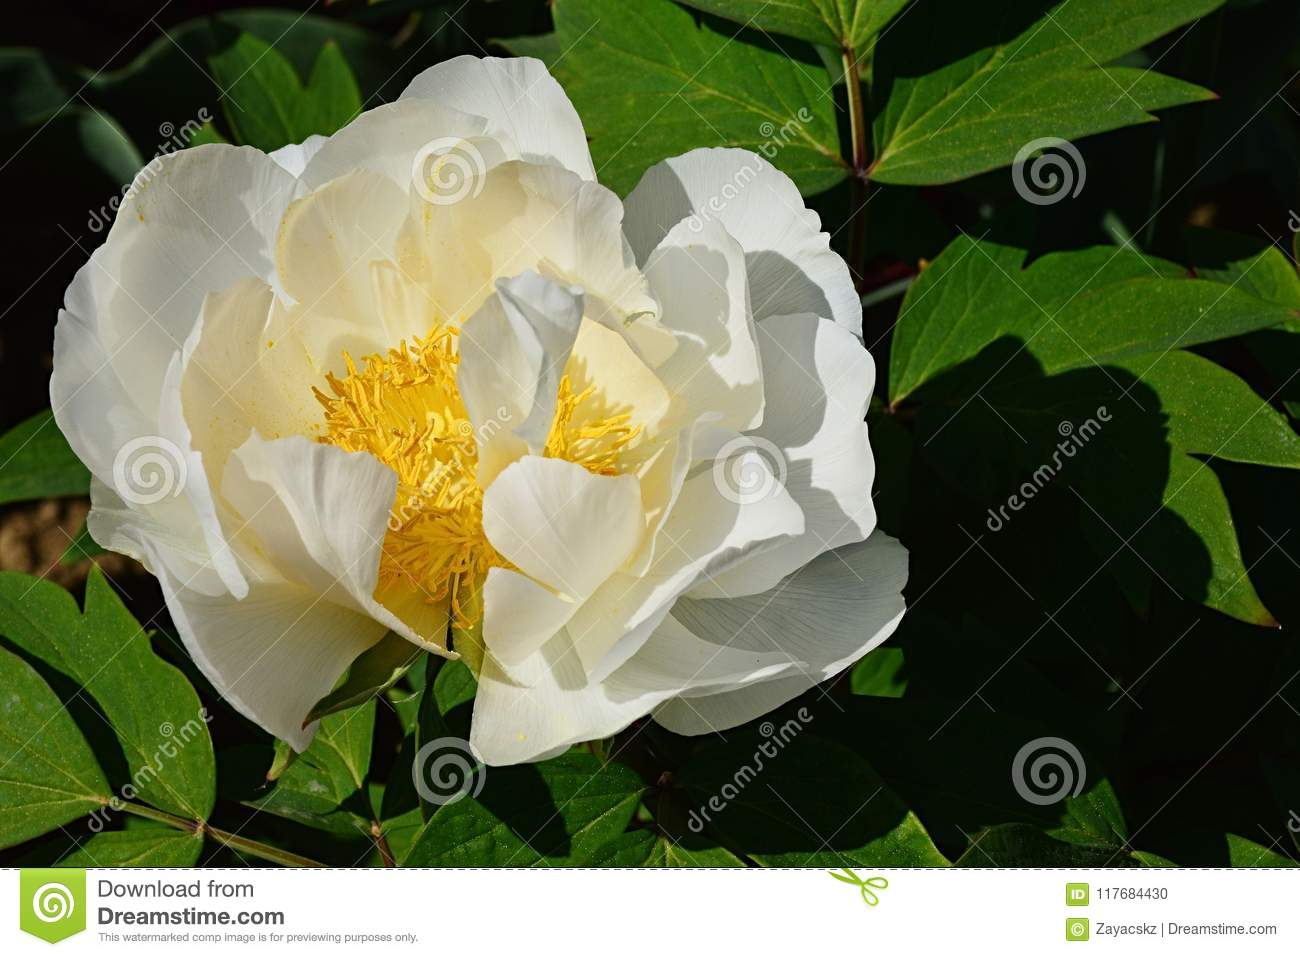 Creamy White To Yellow Coloured Flower Of Tree Peony Paeonia